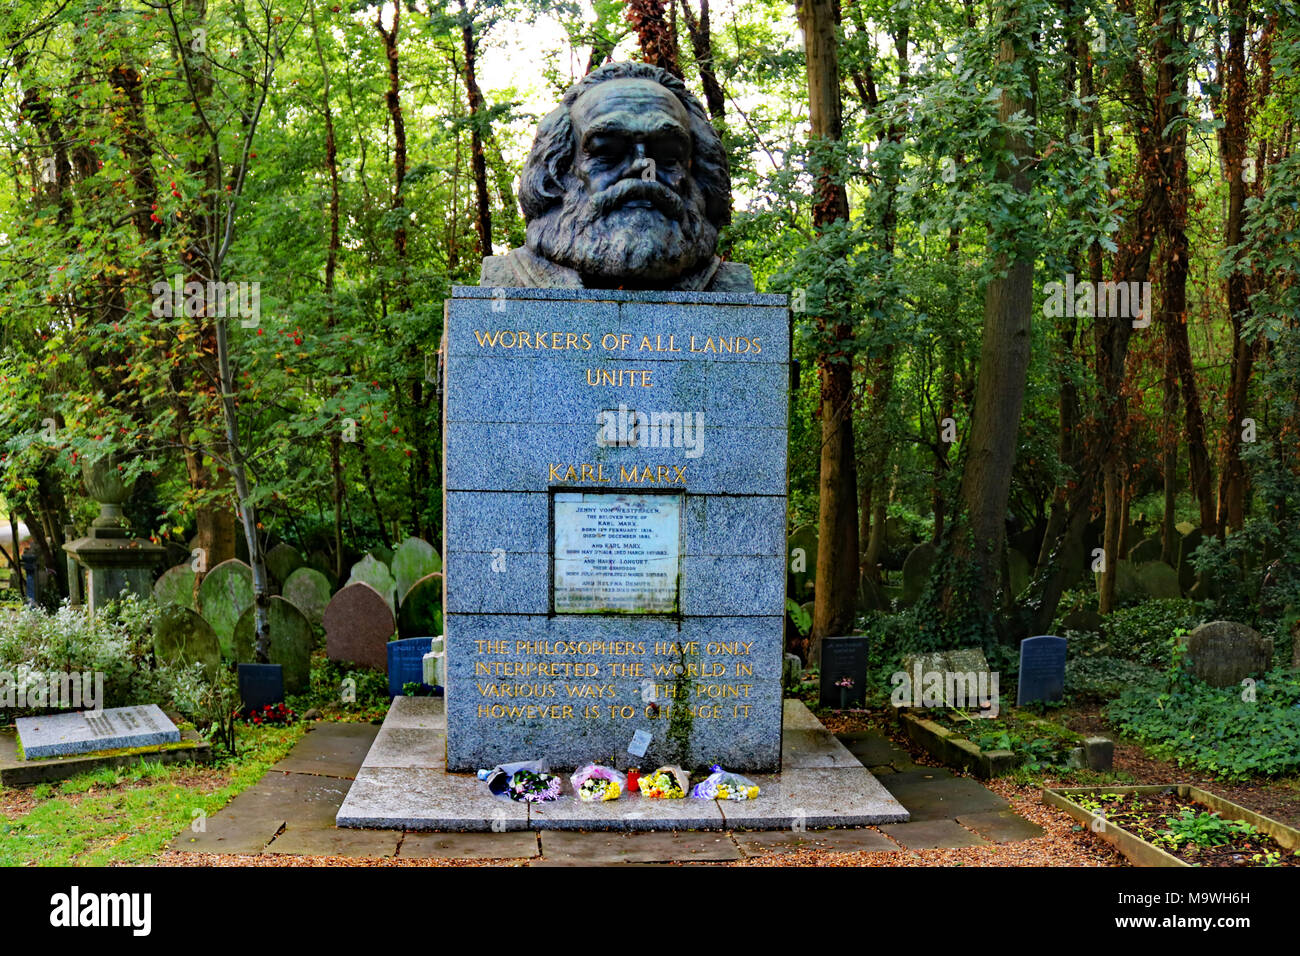 Grave of Karl Marx at Highgate Cemetery, London Stock Photo